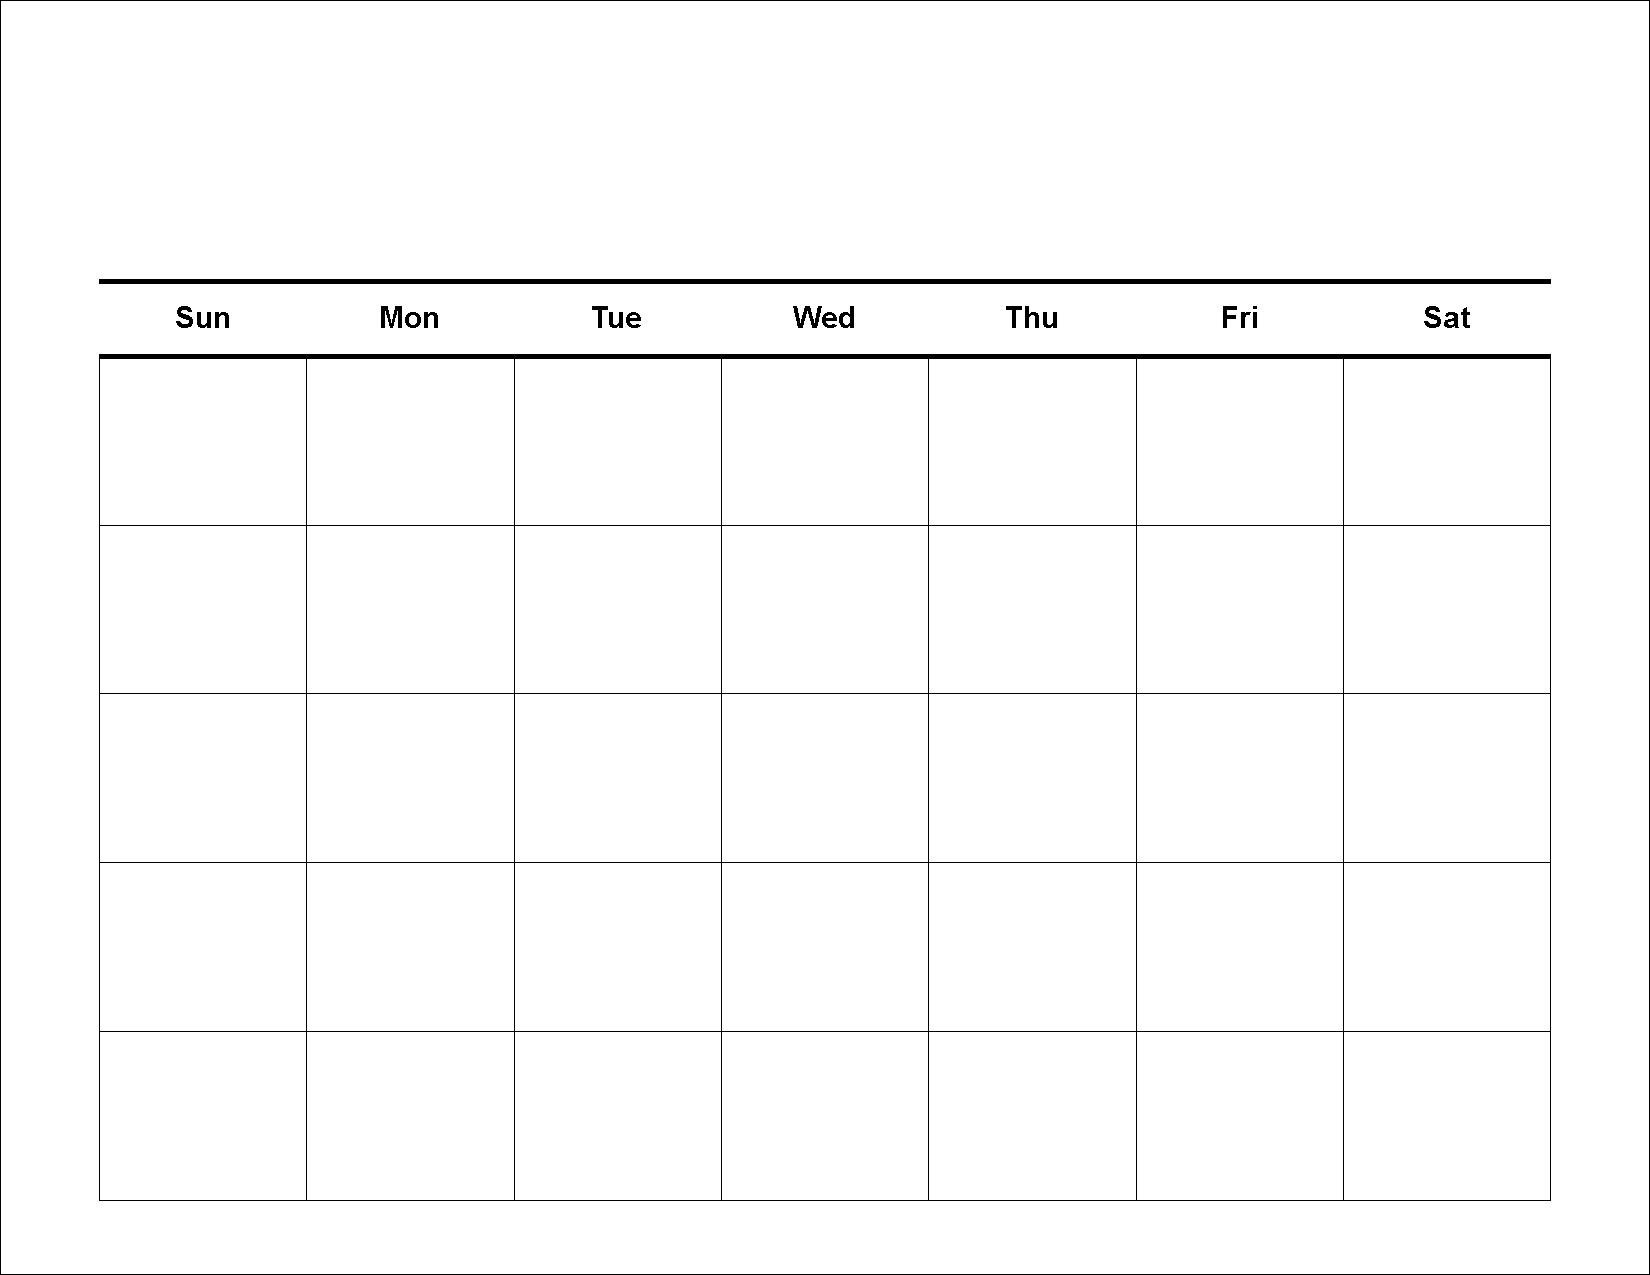 Printable 5 Day Week Calendar | Weekly Calendars 2018  5 Day Week Calendar Template